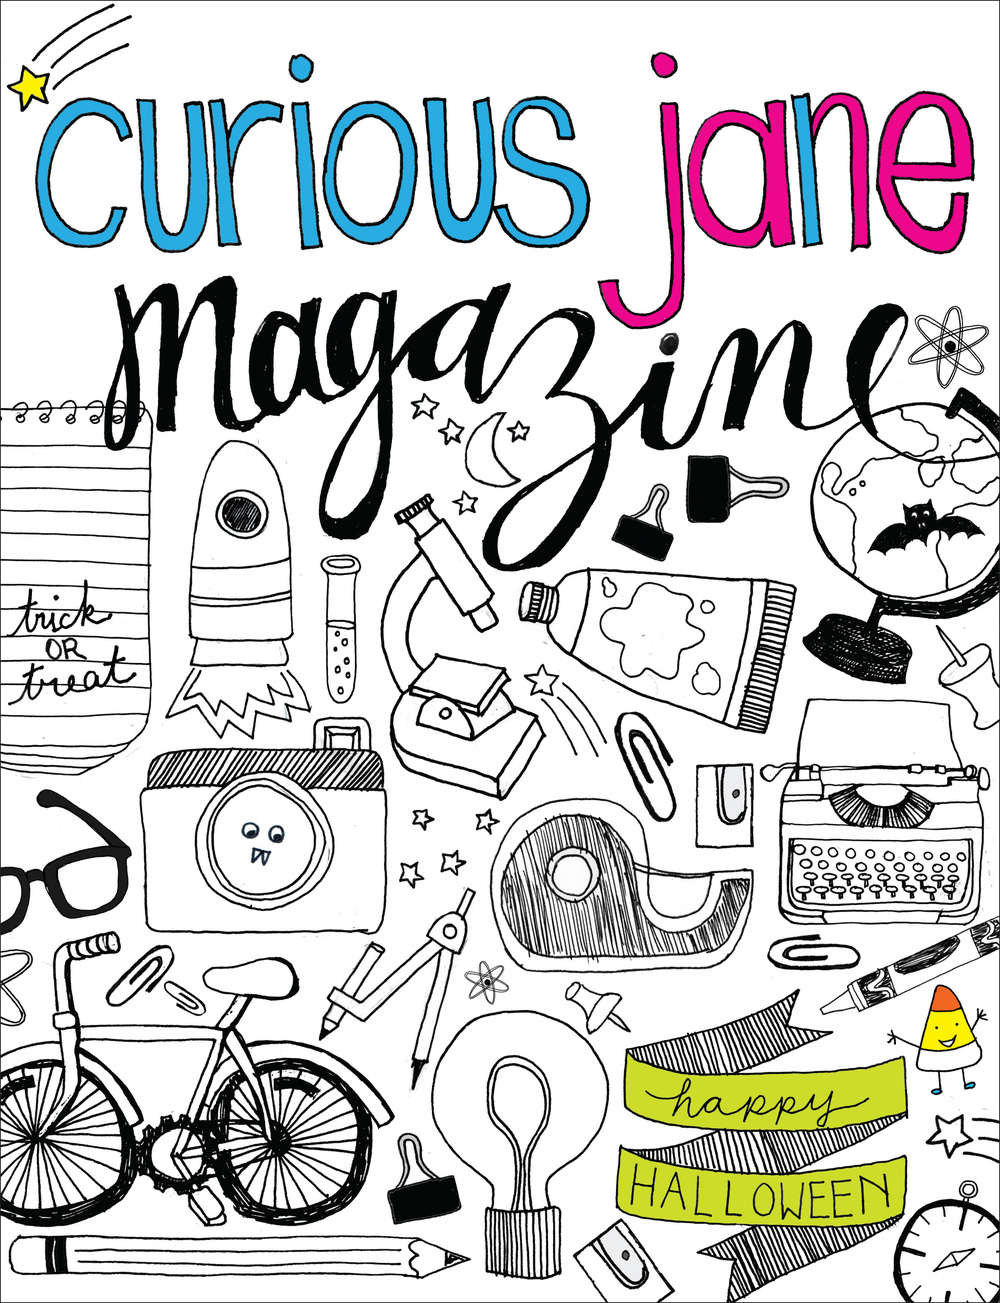 cj_mag_cover_blackoutline1.jpg